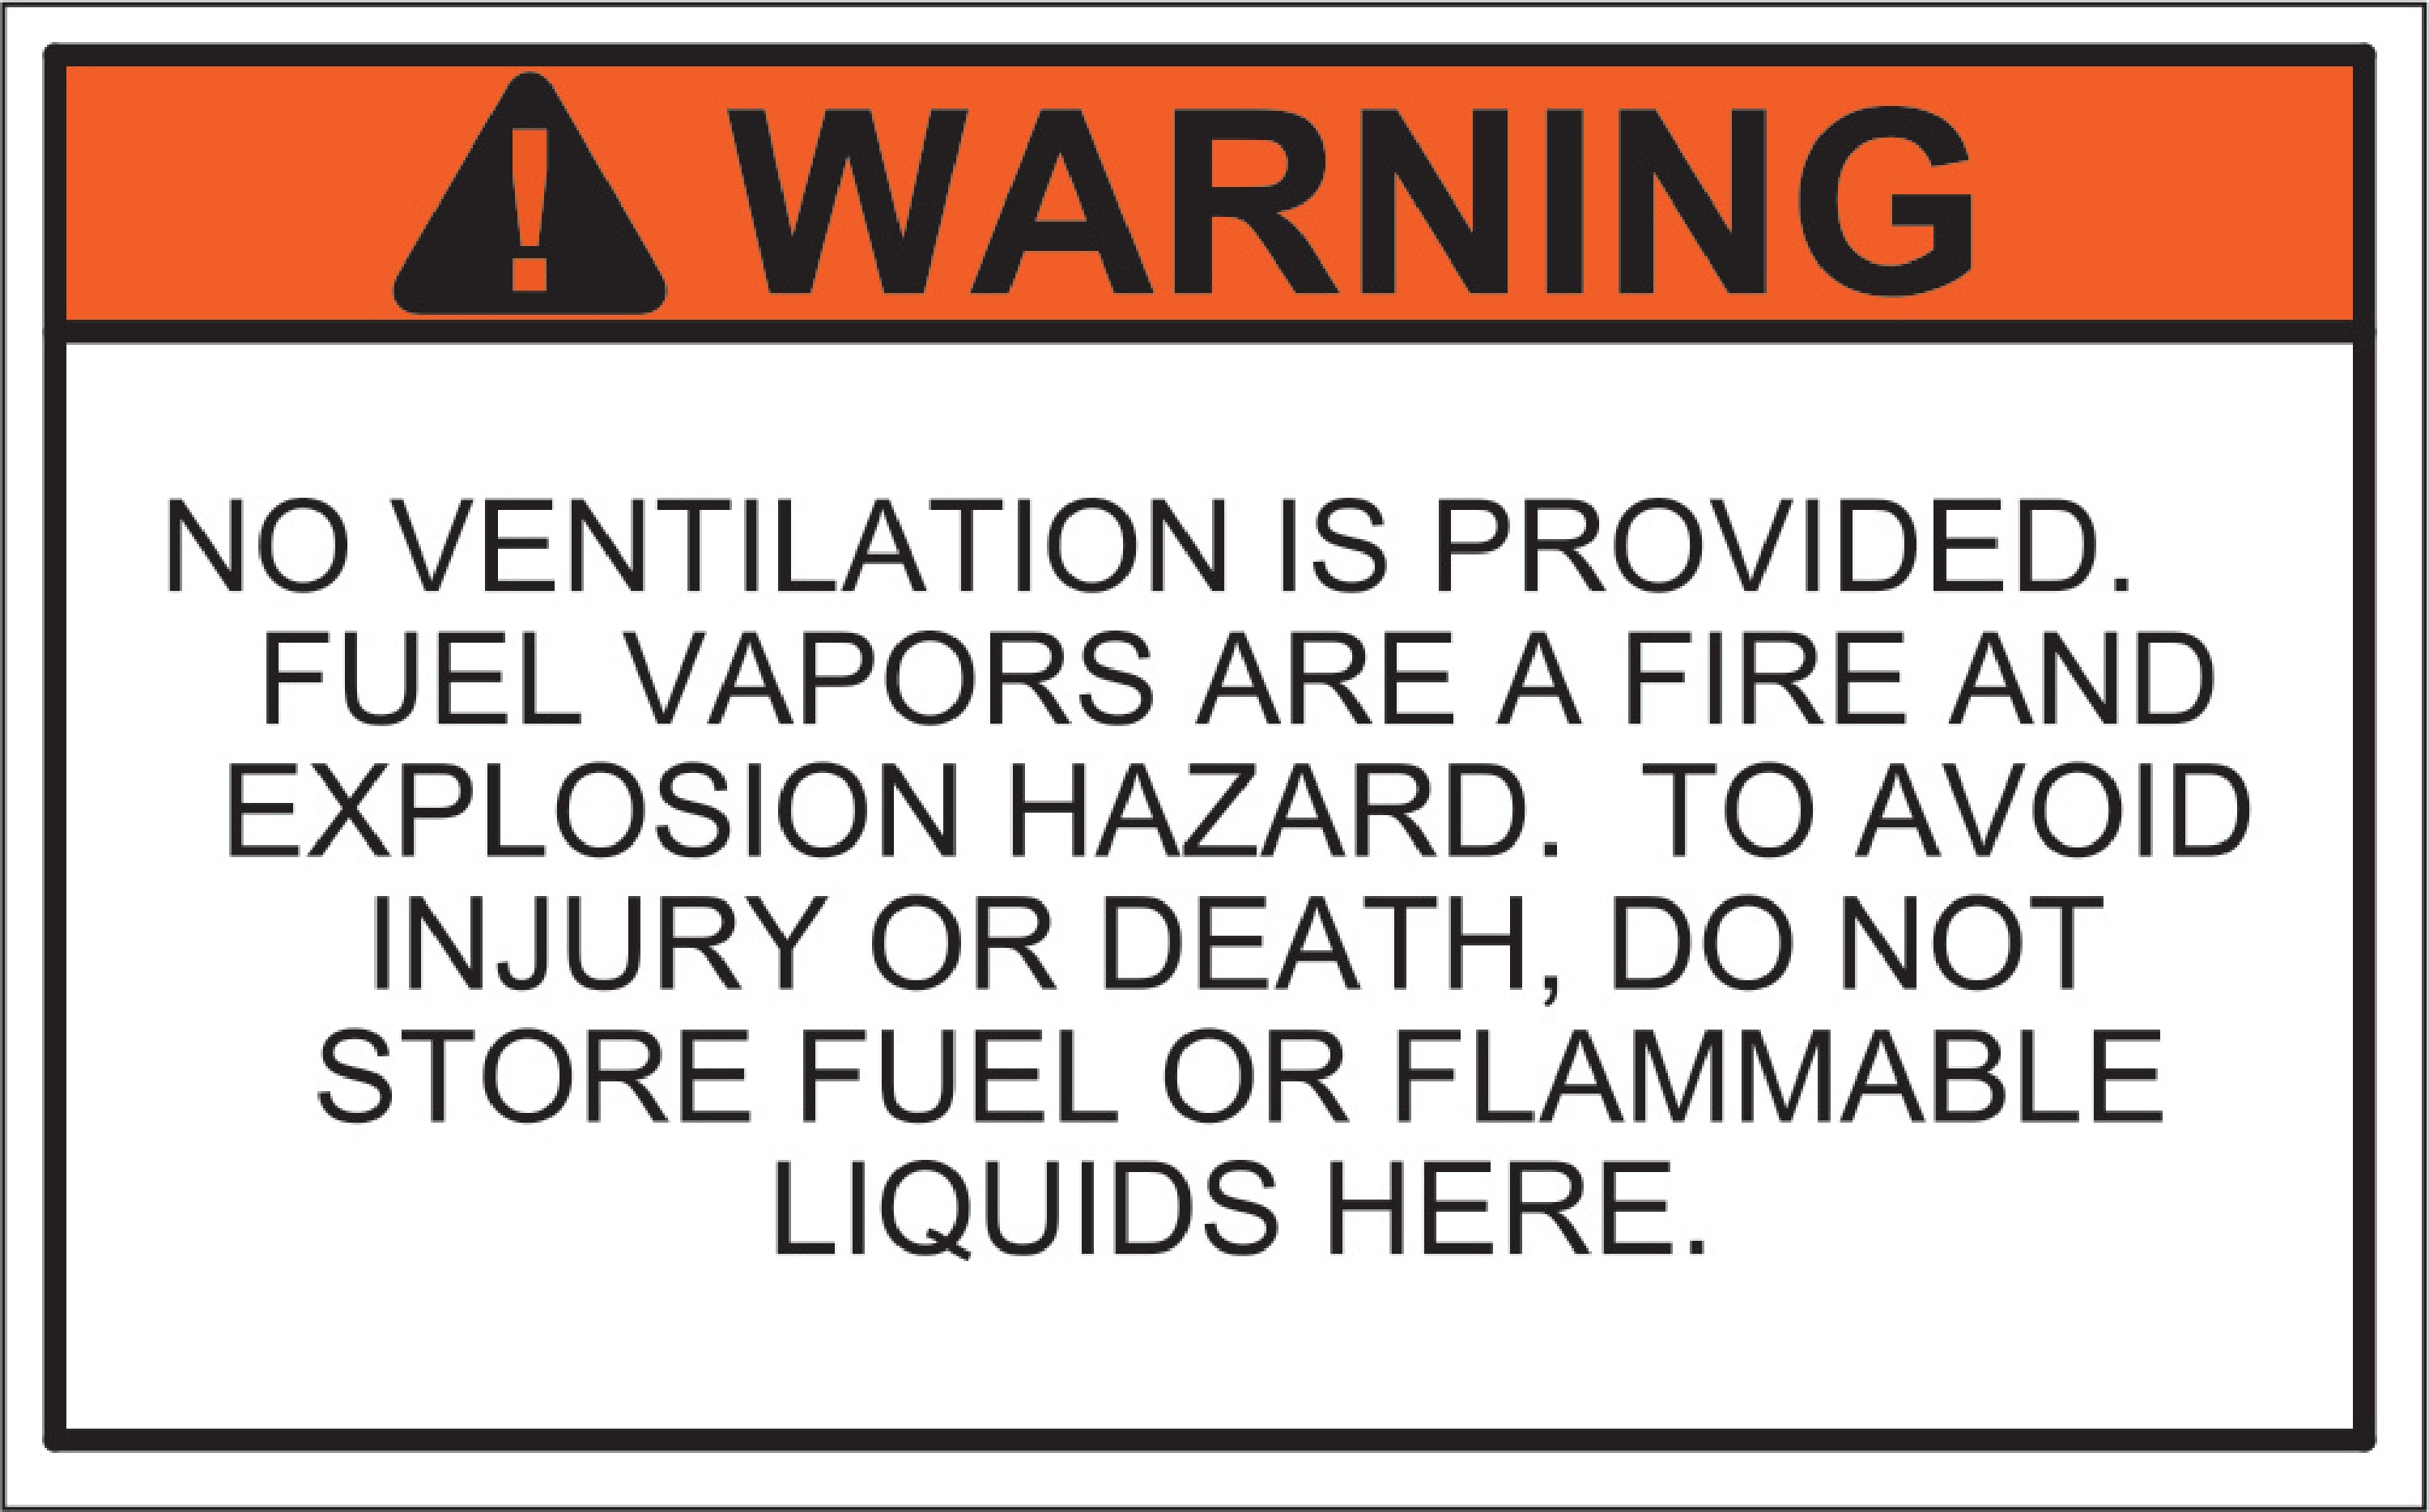 Marine No Ventilation Warning Label